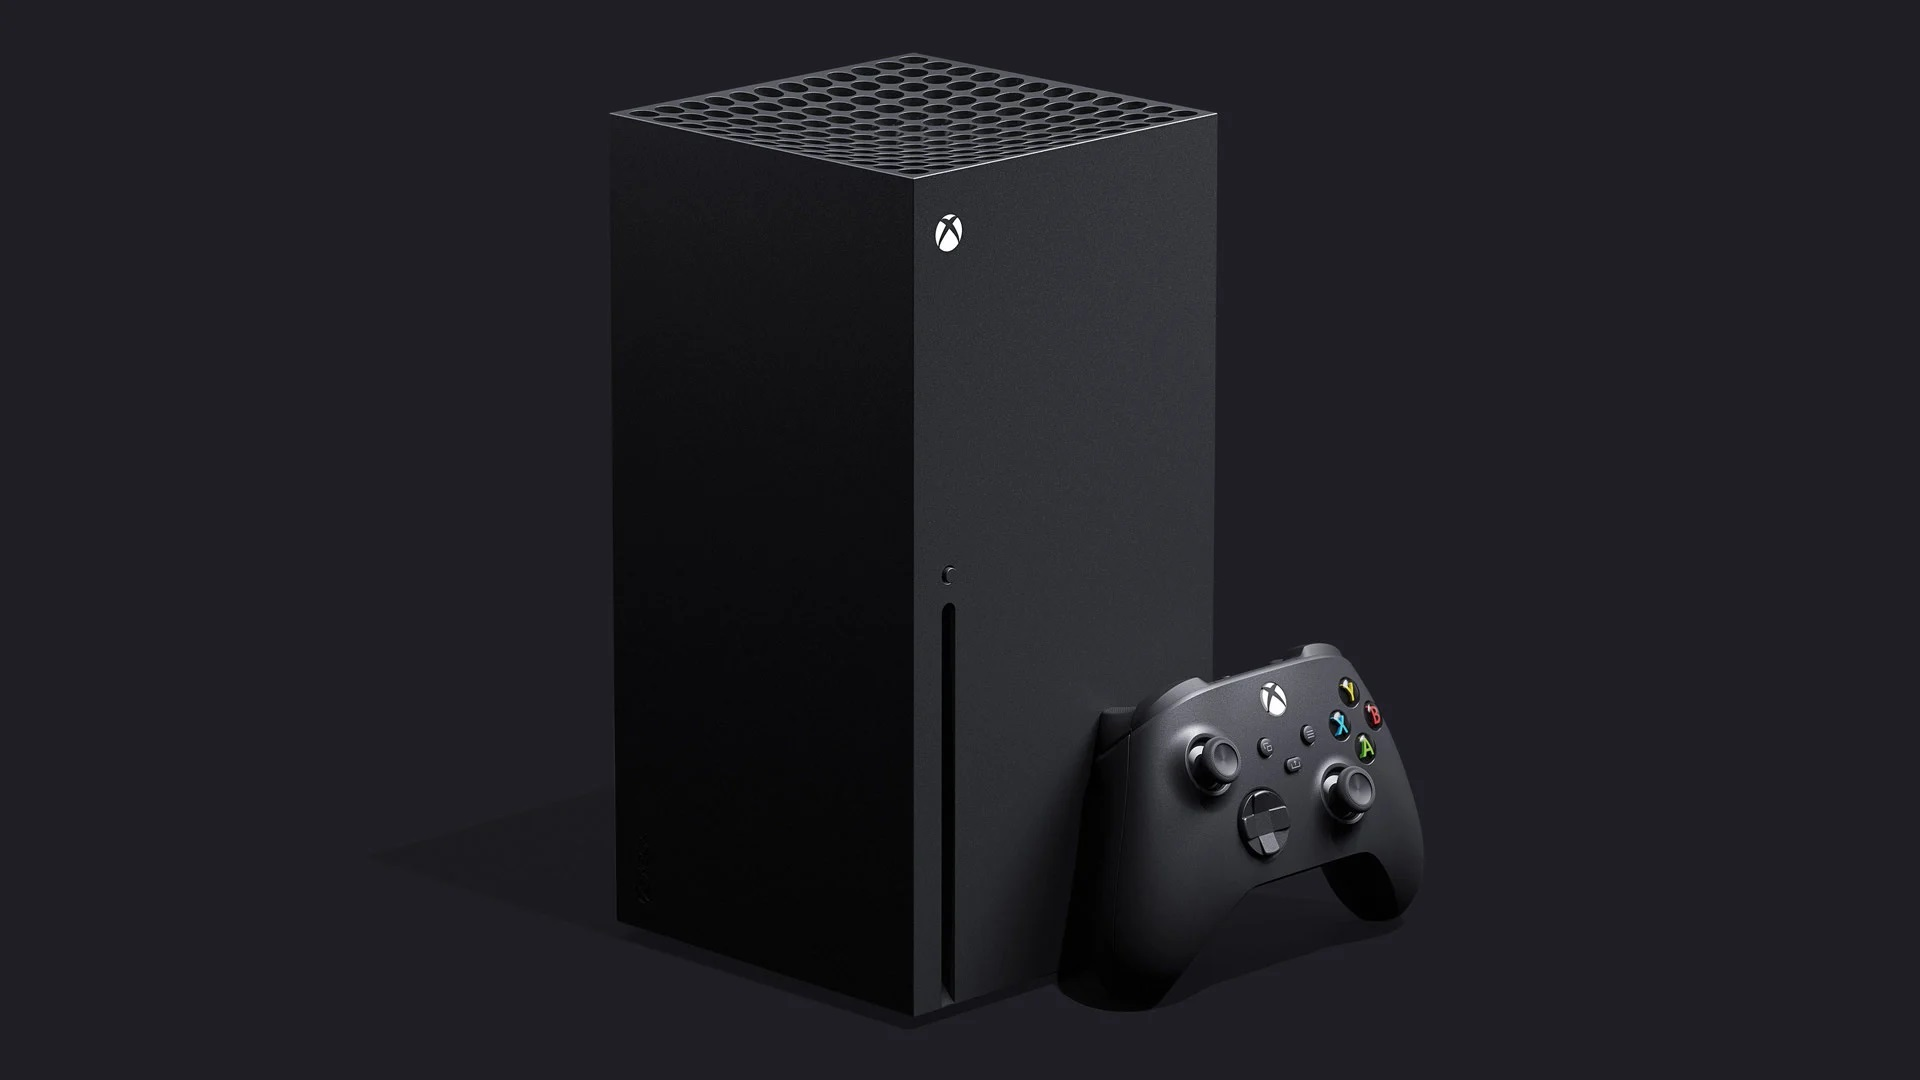 Only Kinect games are lost to Xbox Series X's backward compatibility screenshot